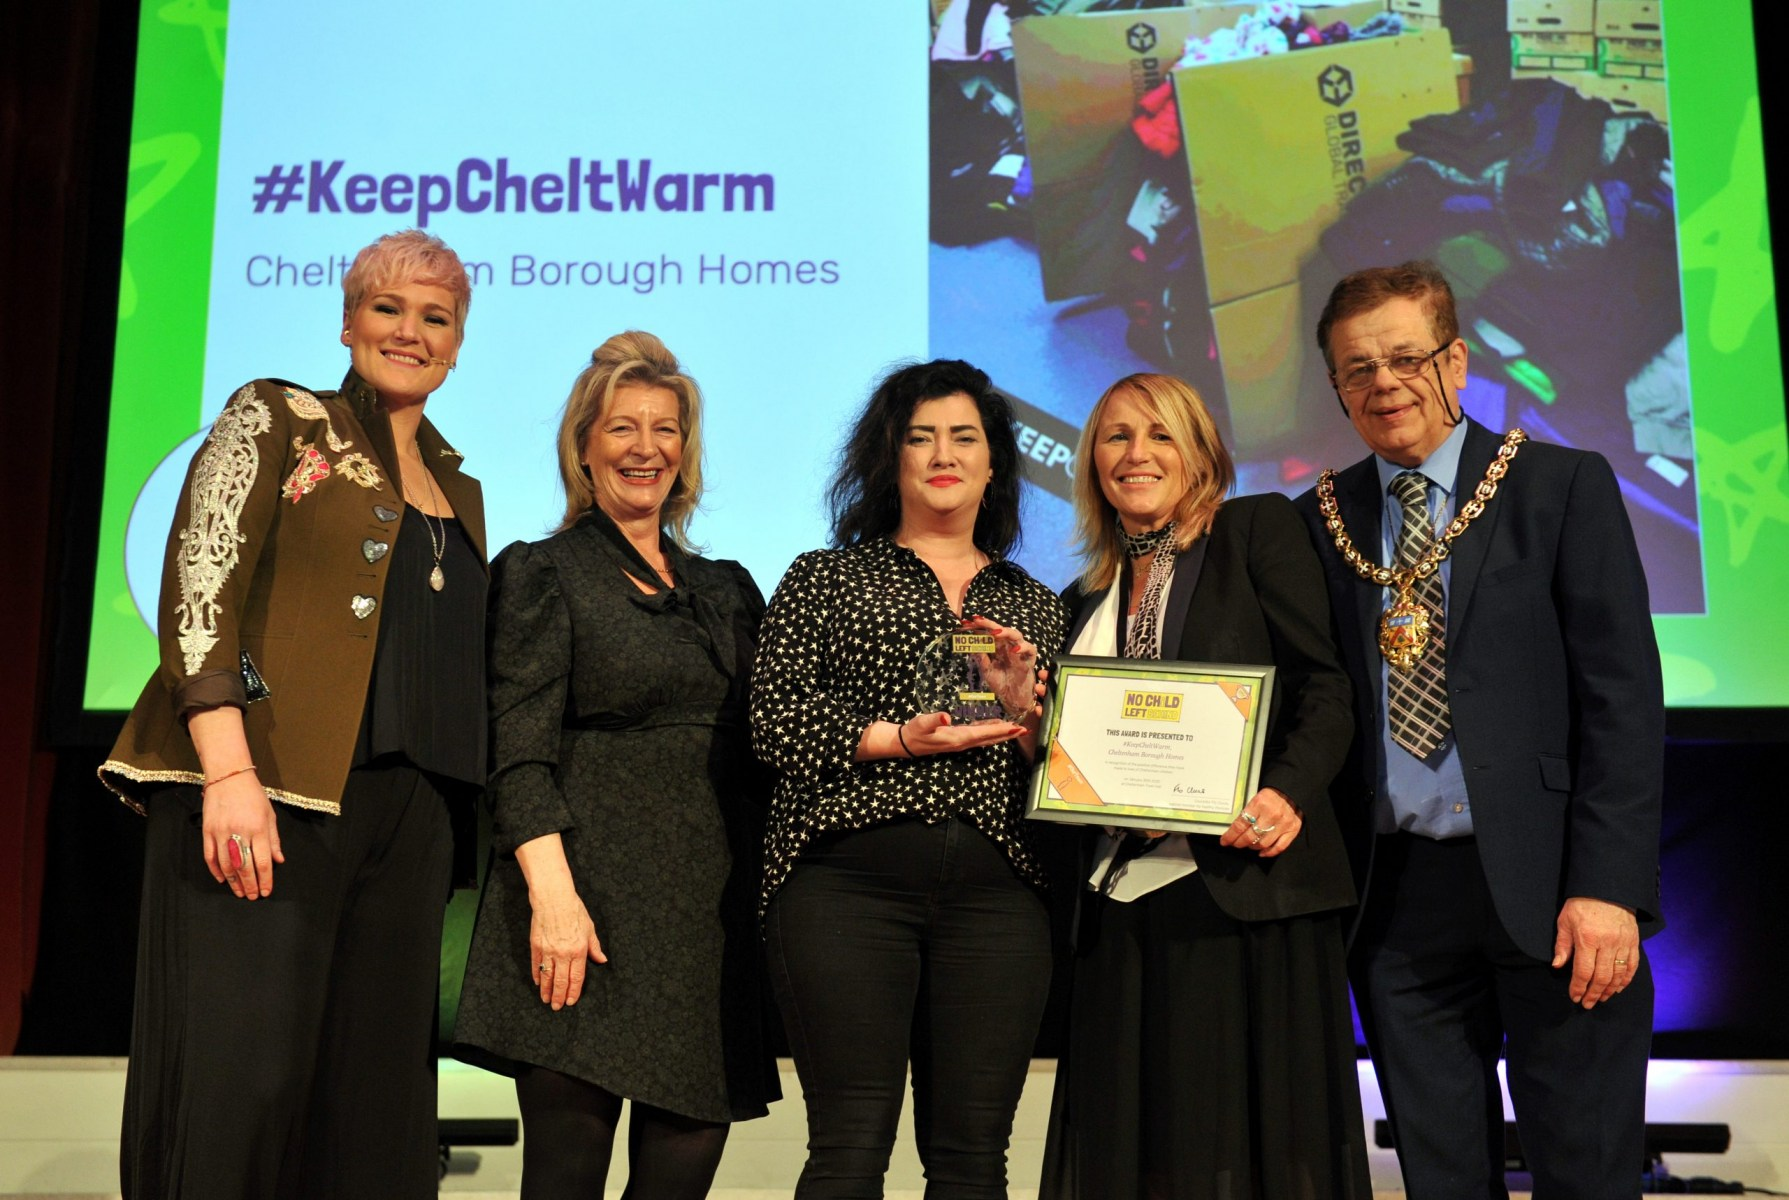 No Child Left Behind awards ceremony at Cheltenham Town Hall. Our Town Award presented by Councillor Roger Whyborn (Mayor) & Laurie Bell  (The Cheltenham Trust) to #KeepCheltWarm